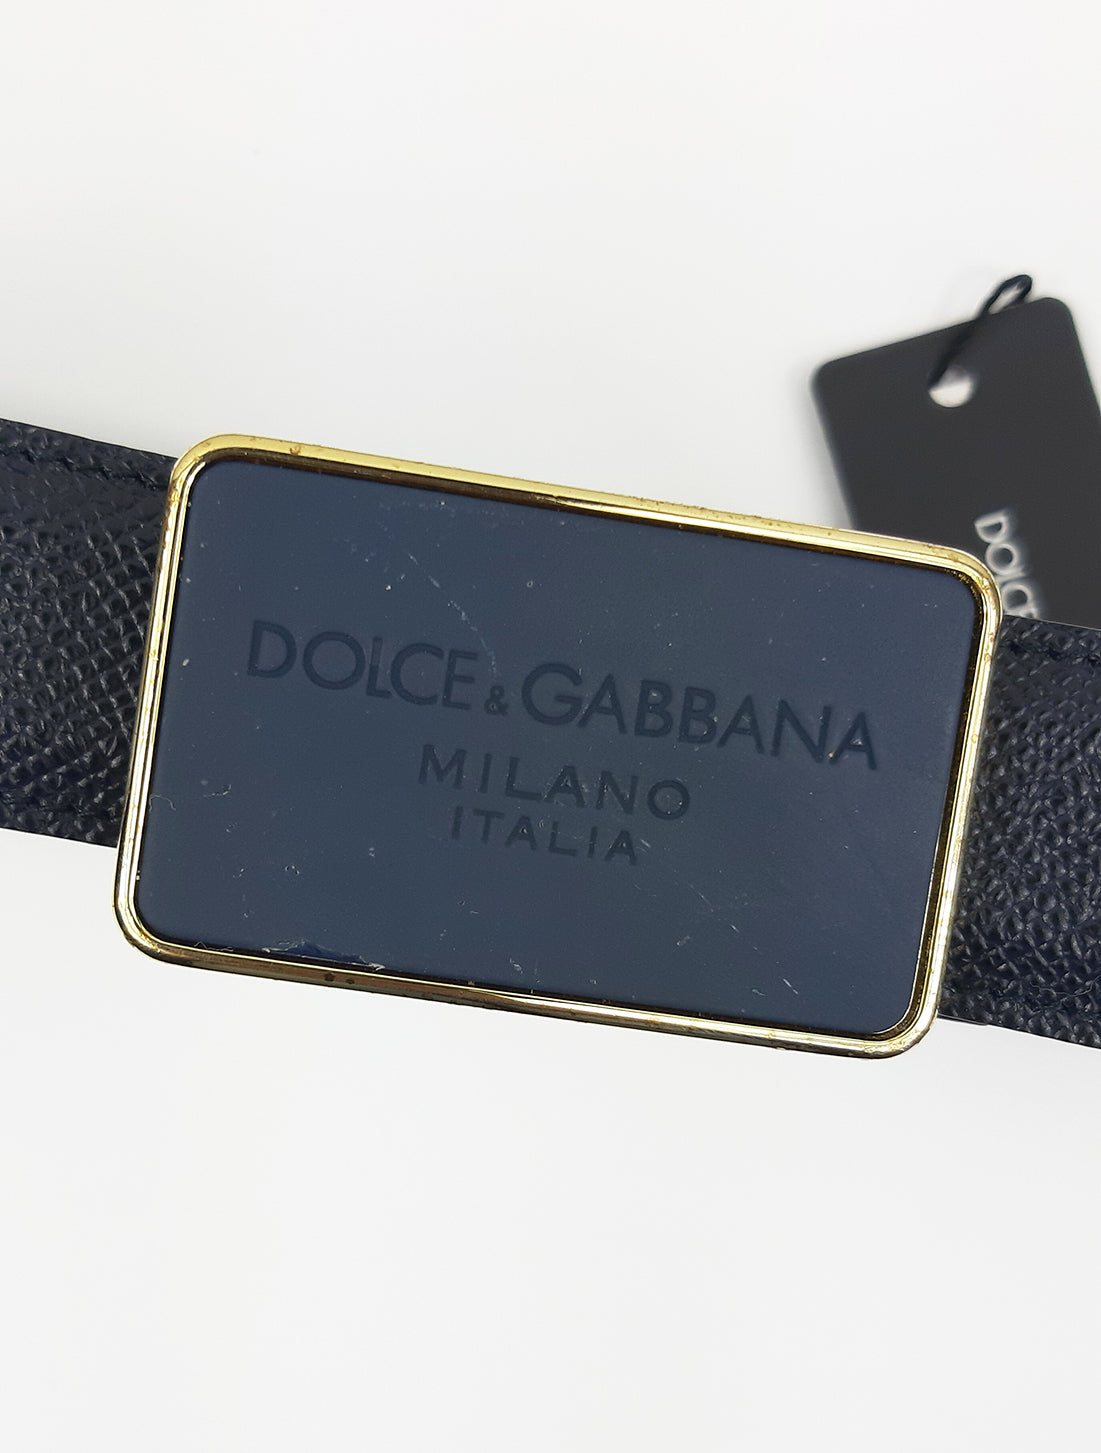 Dolce & Gabbana Black Belt with Square Black and Golden Buckle  Size 95 cm